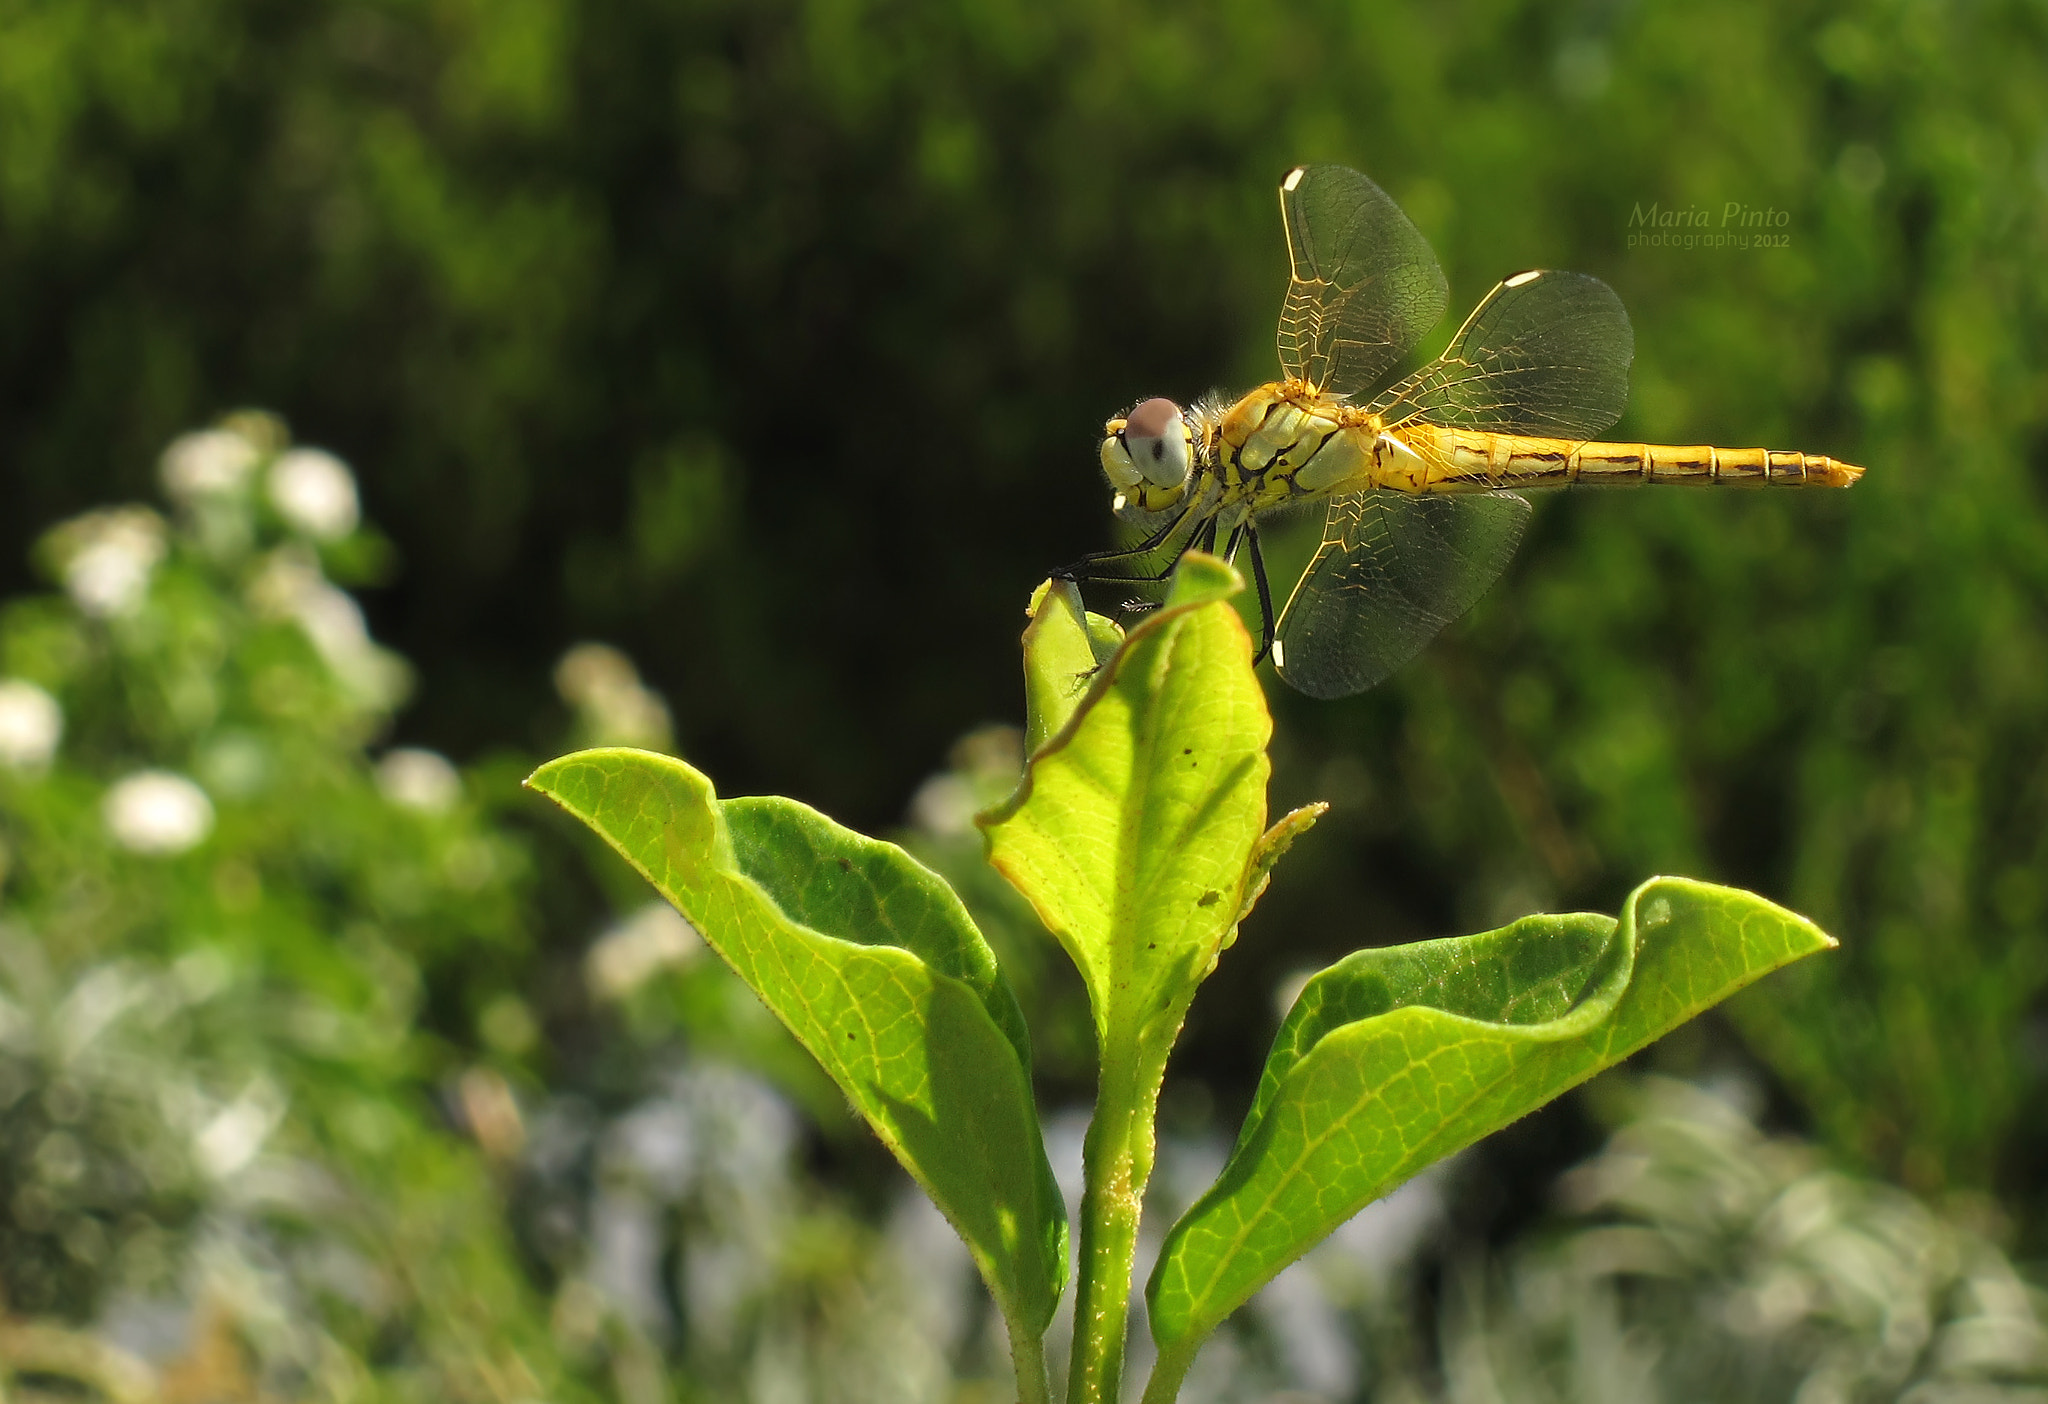 Photograph Red-veined Darter III by Maria Pinto on 500px